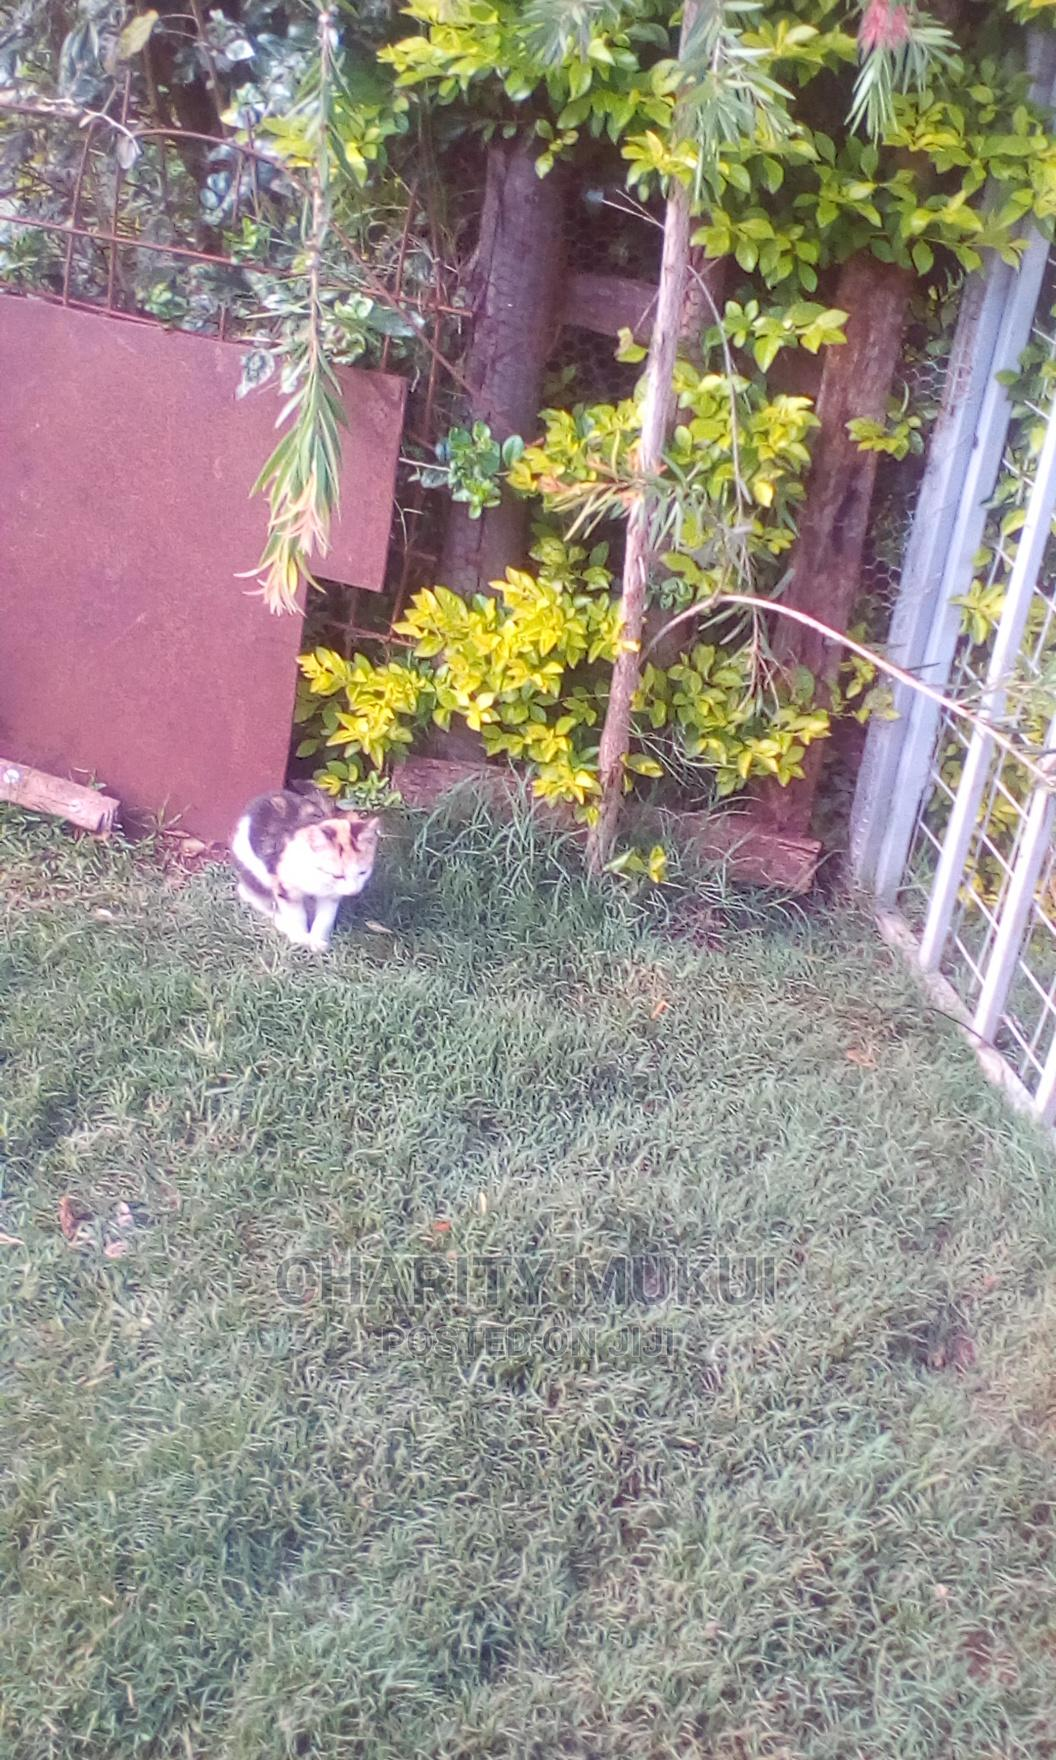 Archive: 6-12 Month Female Mixed Breed Persian